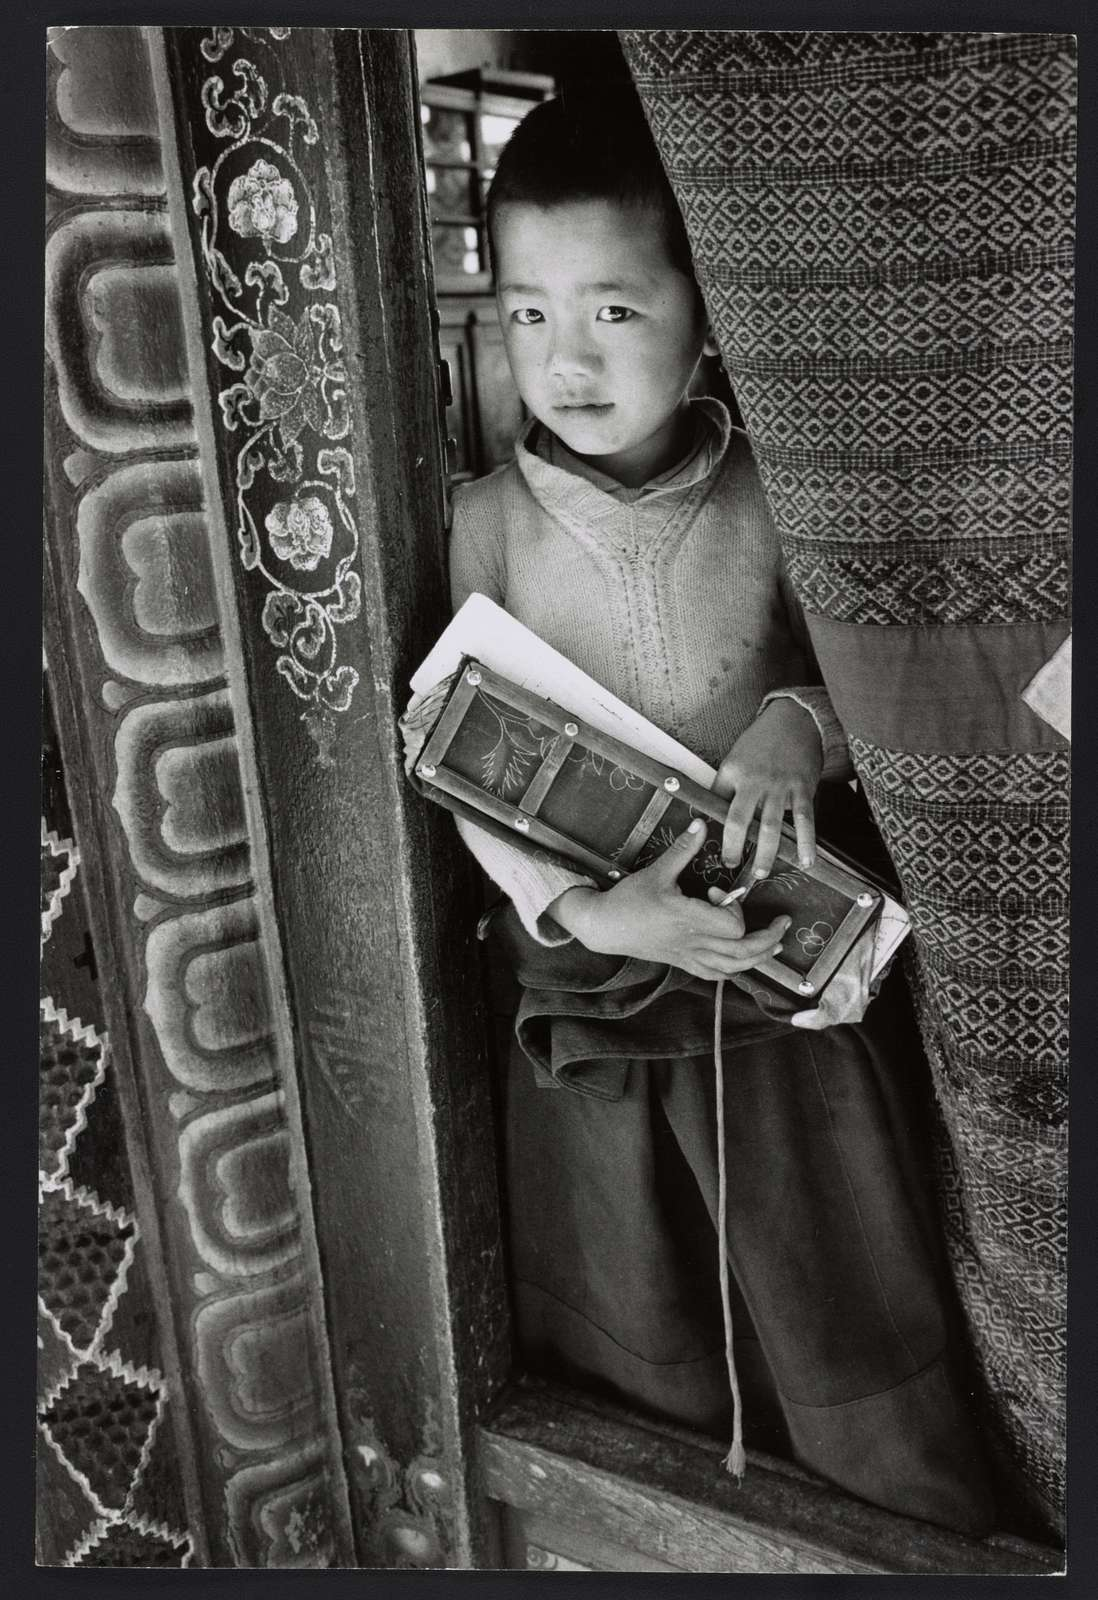 Reincarnation of a holy lama takes a break from his reading. He holds a prayer book covered in wood